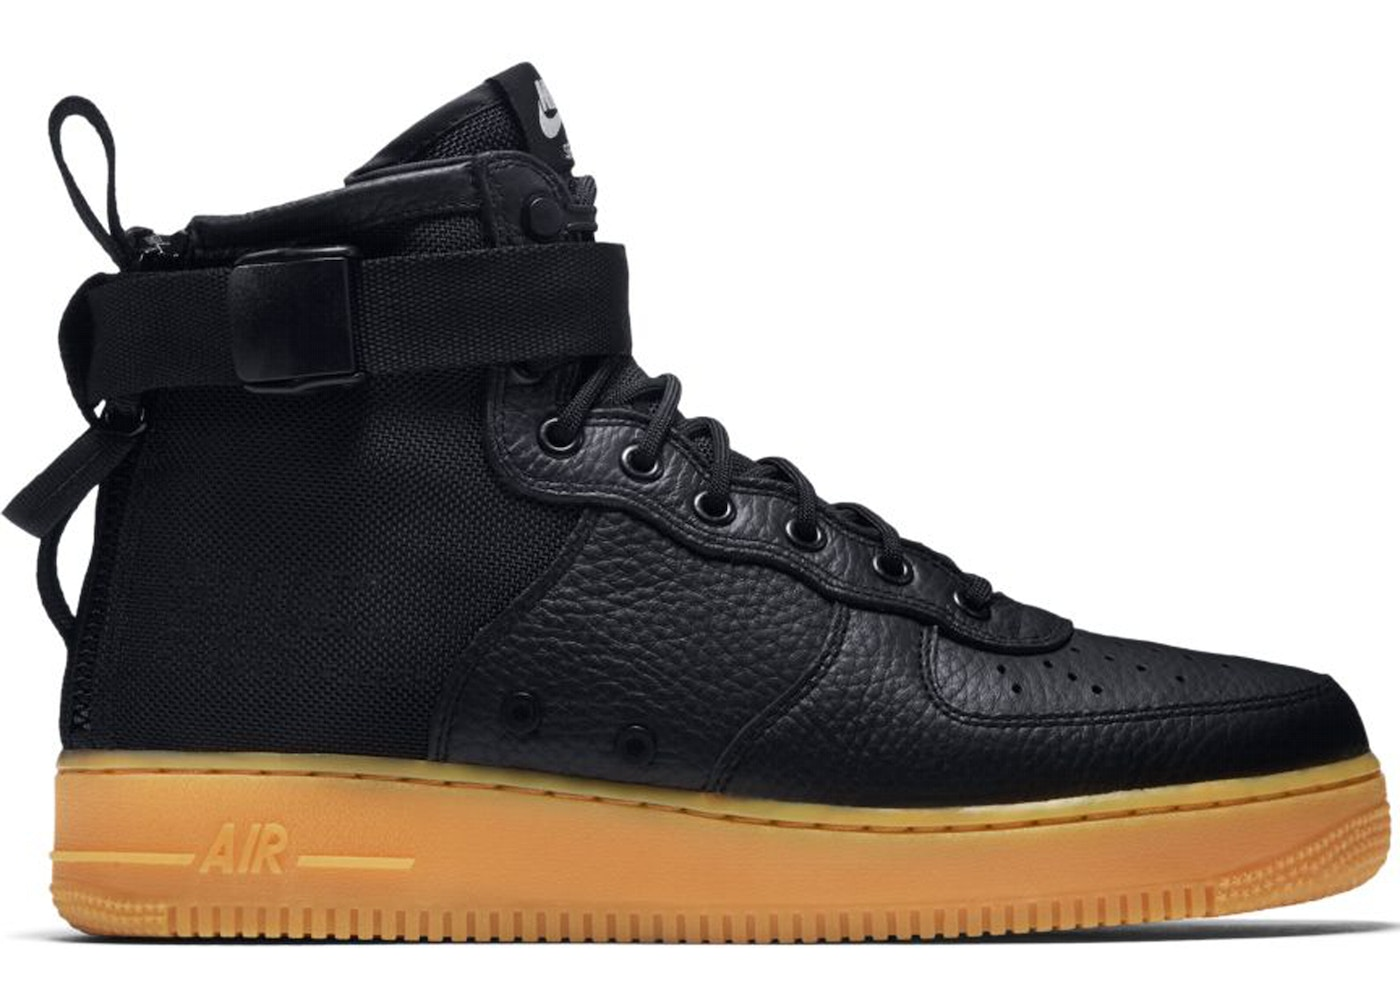 ... buy sale 826ff 464f9 buy cheap find great Nike SF AF1 Mid - Black Gum  from ... ad10908d9